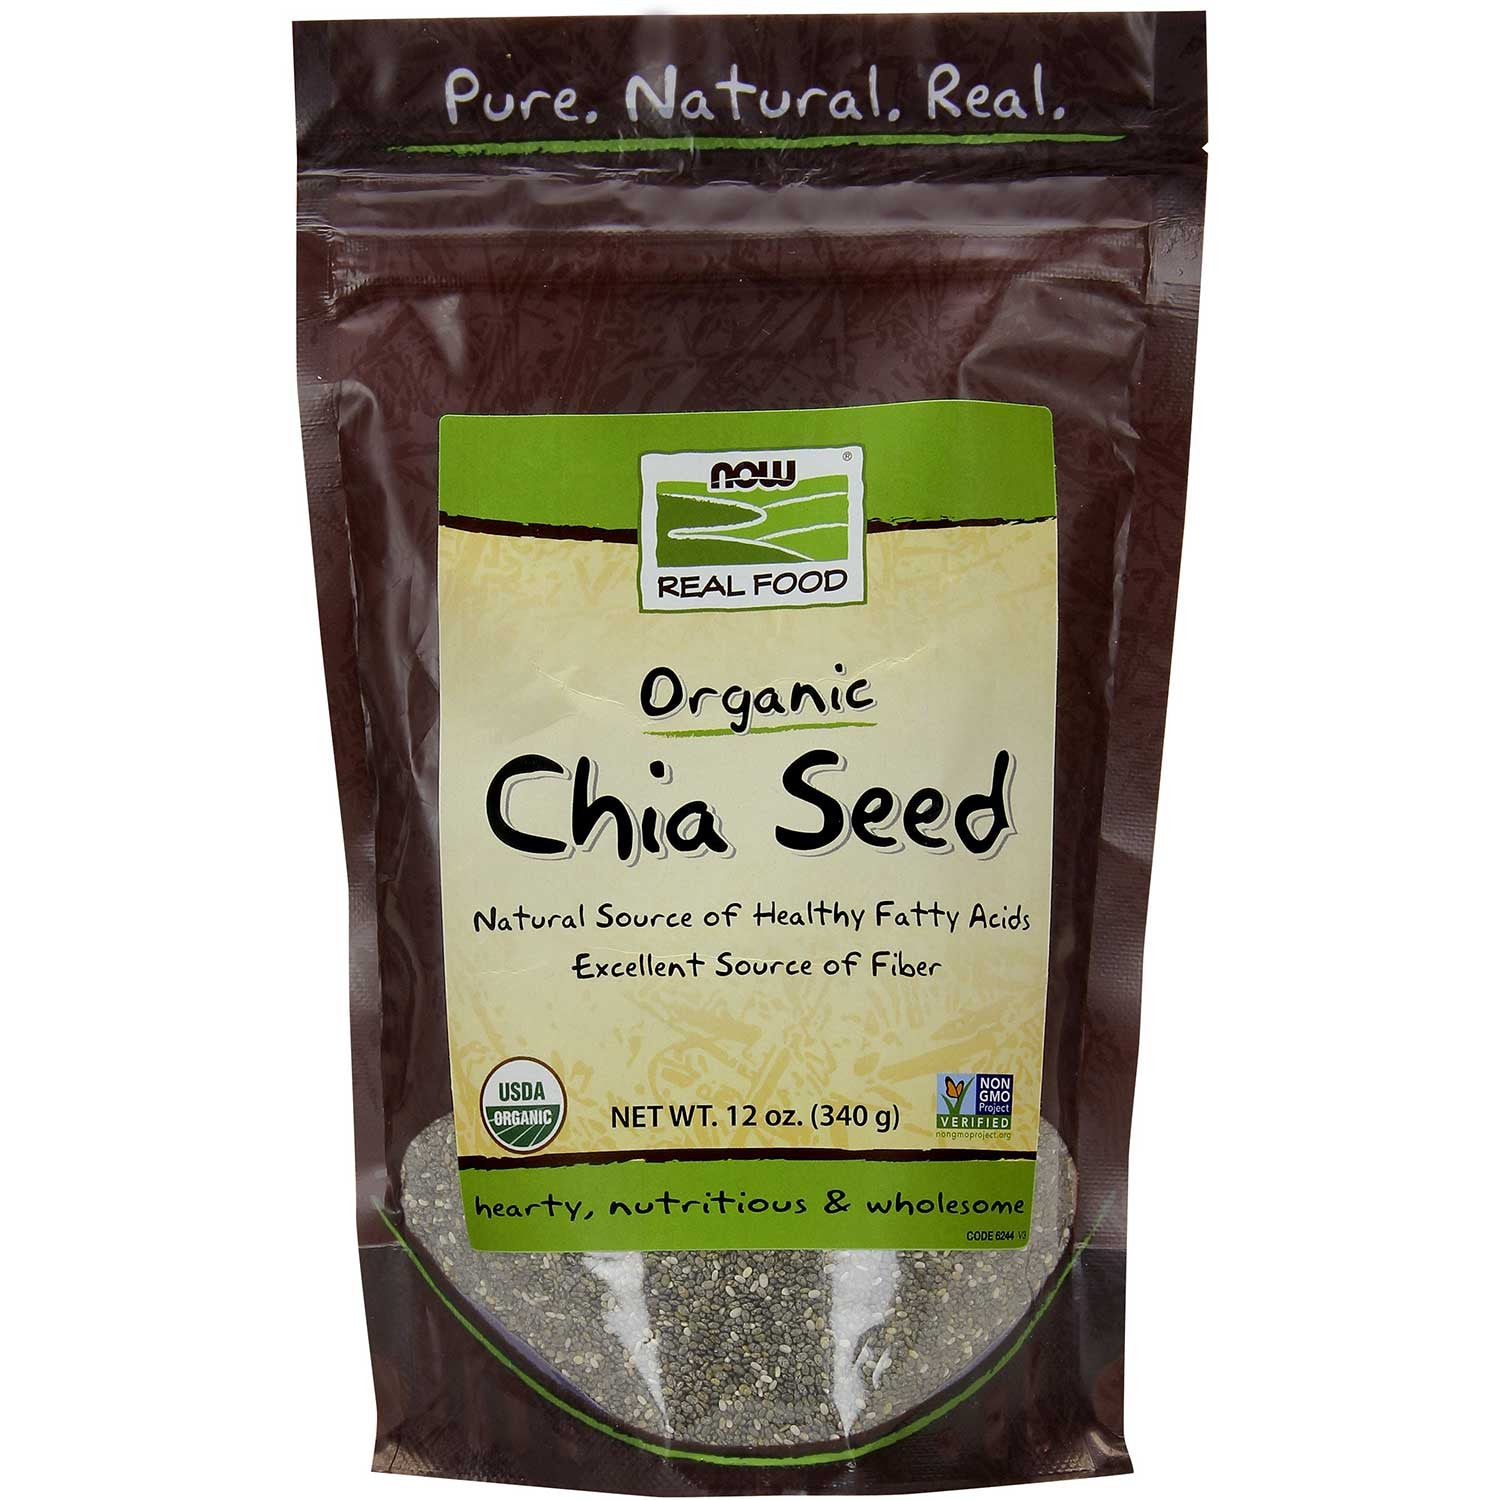 NOW Real Food Organic Chia Seeds - Black, 340g.-NaturesWisdom